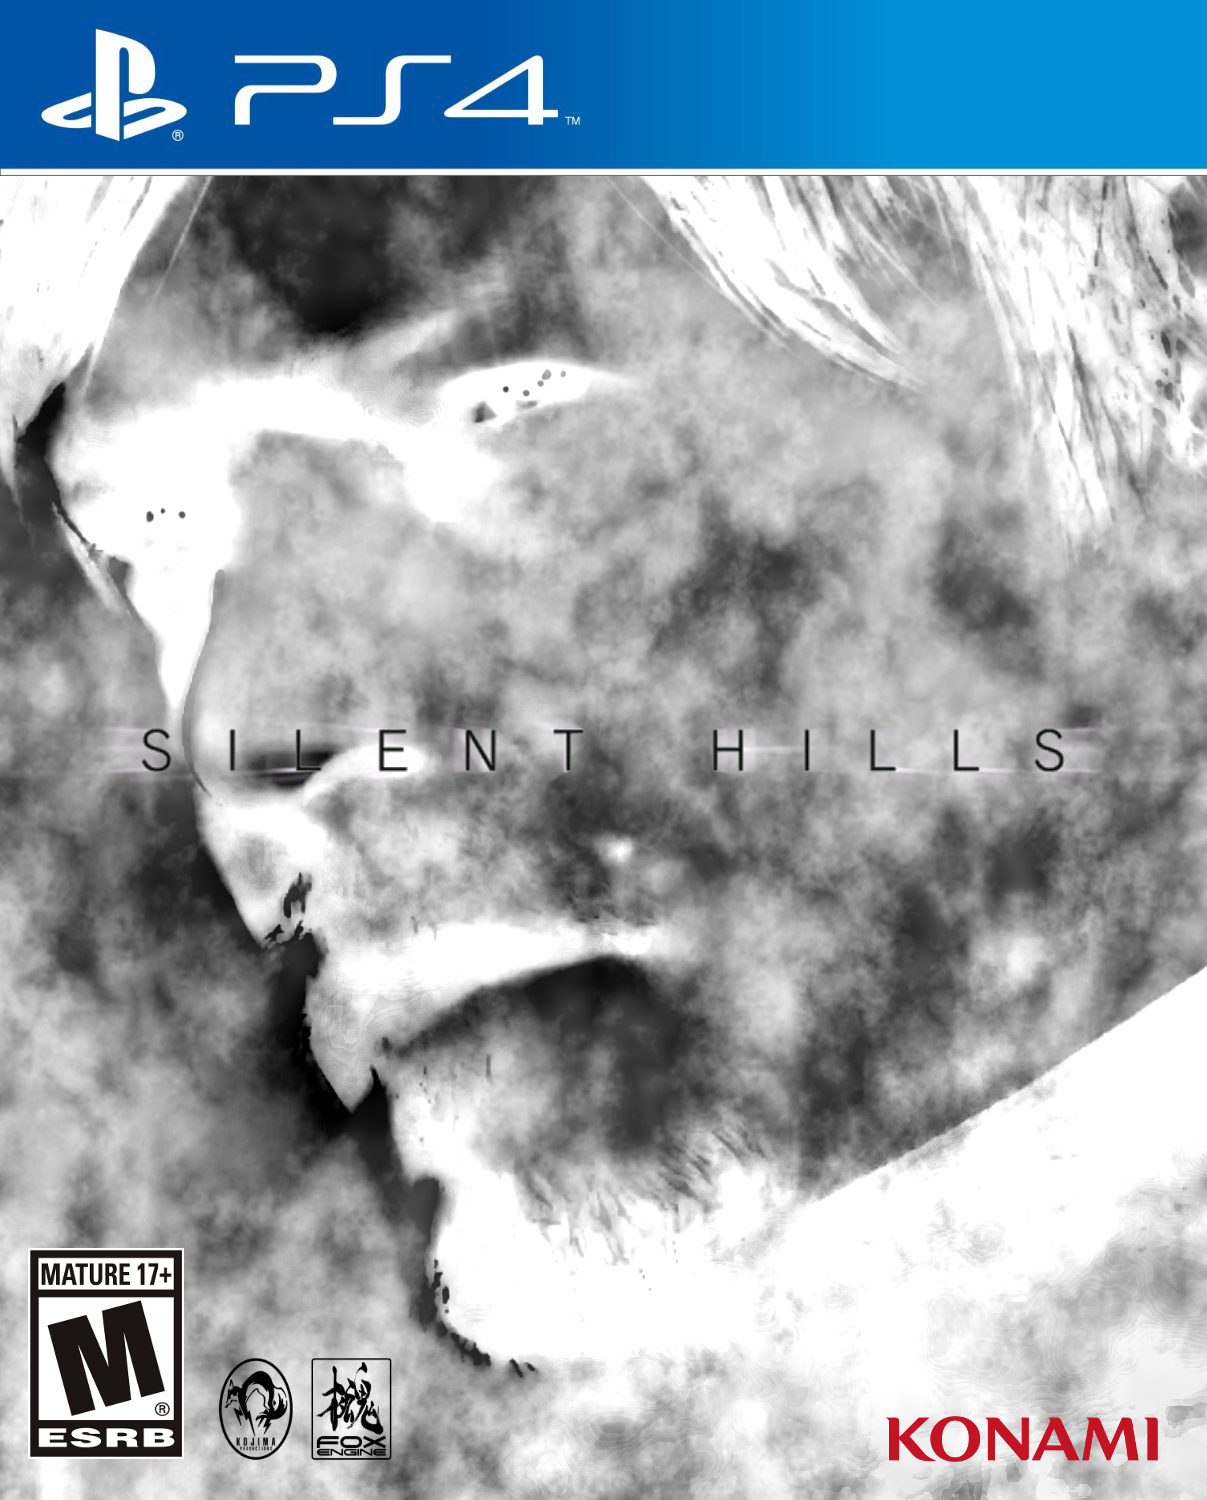 Silent Hills PS4 Box Art 20140903-2054 - V1-11-3 by CrazyDave55811